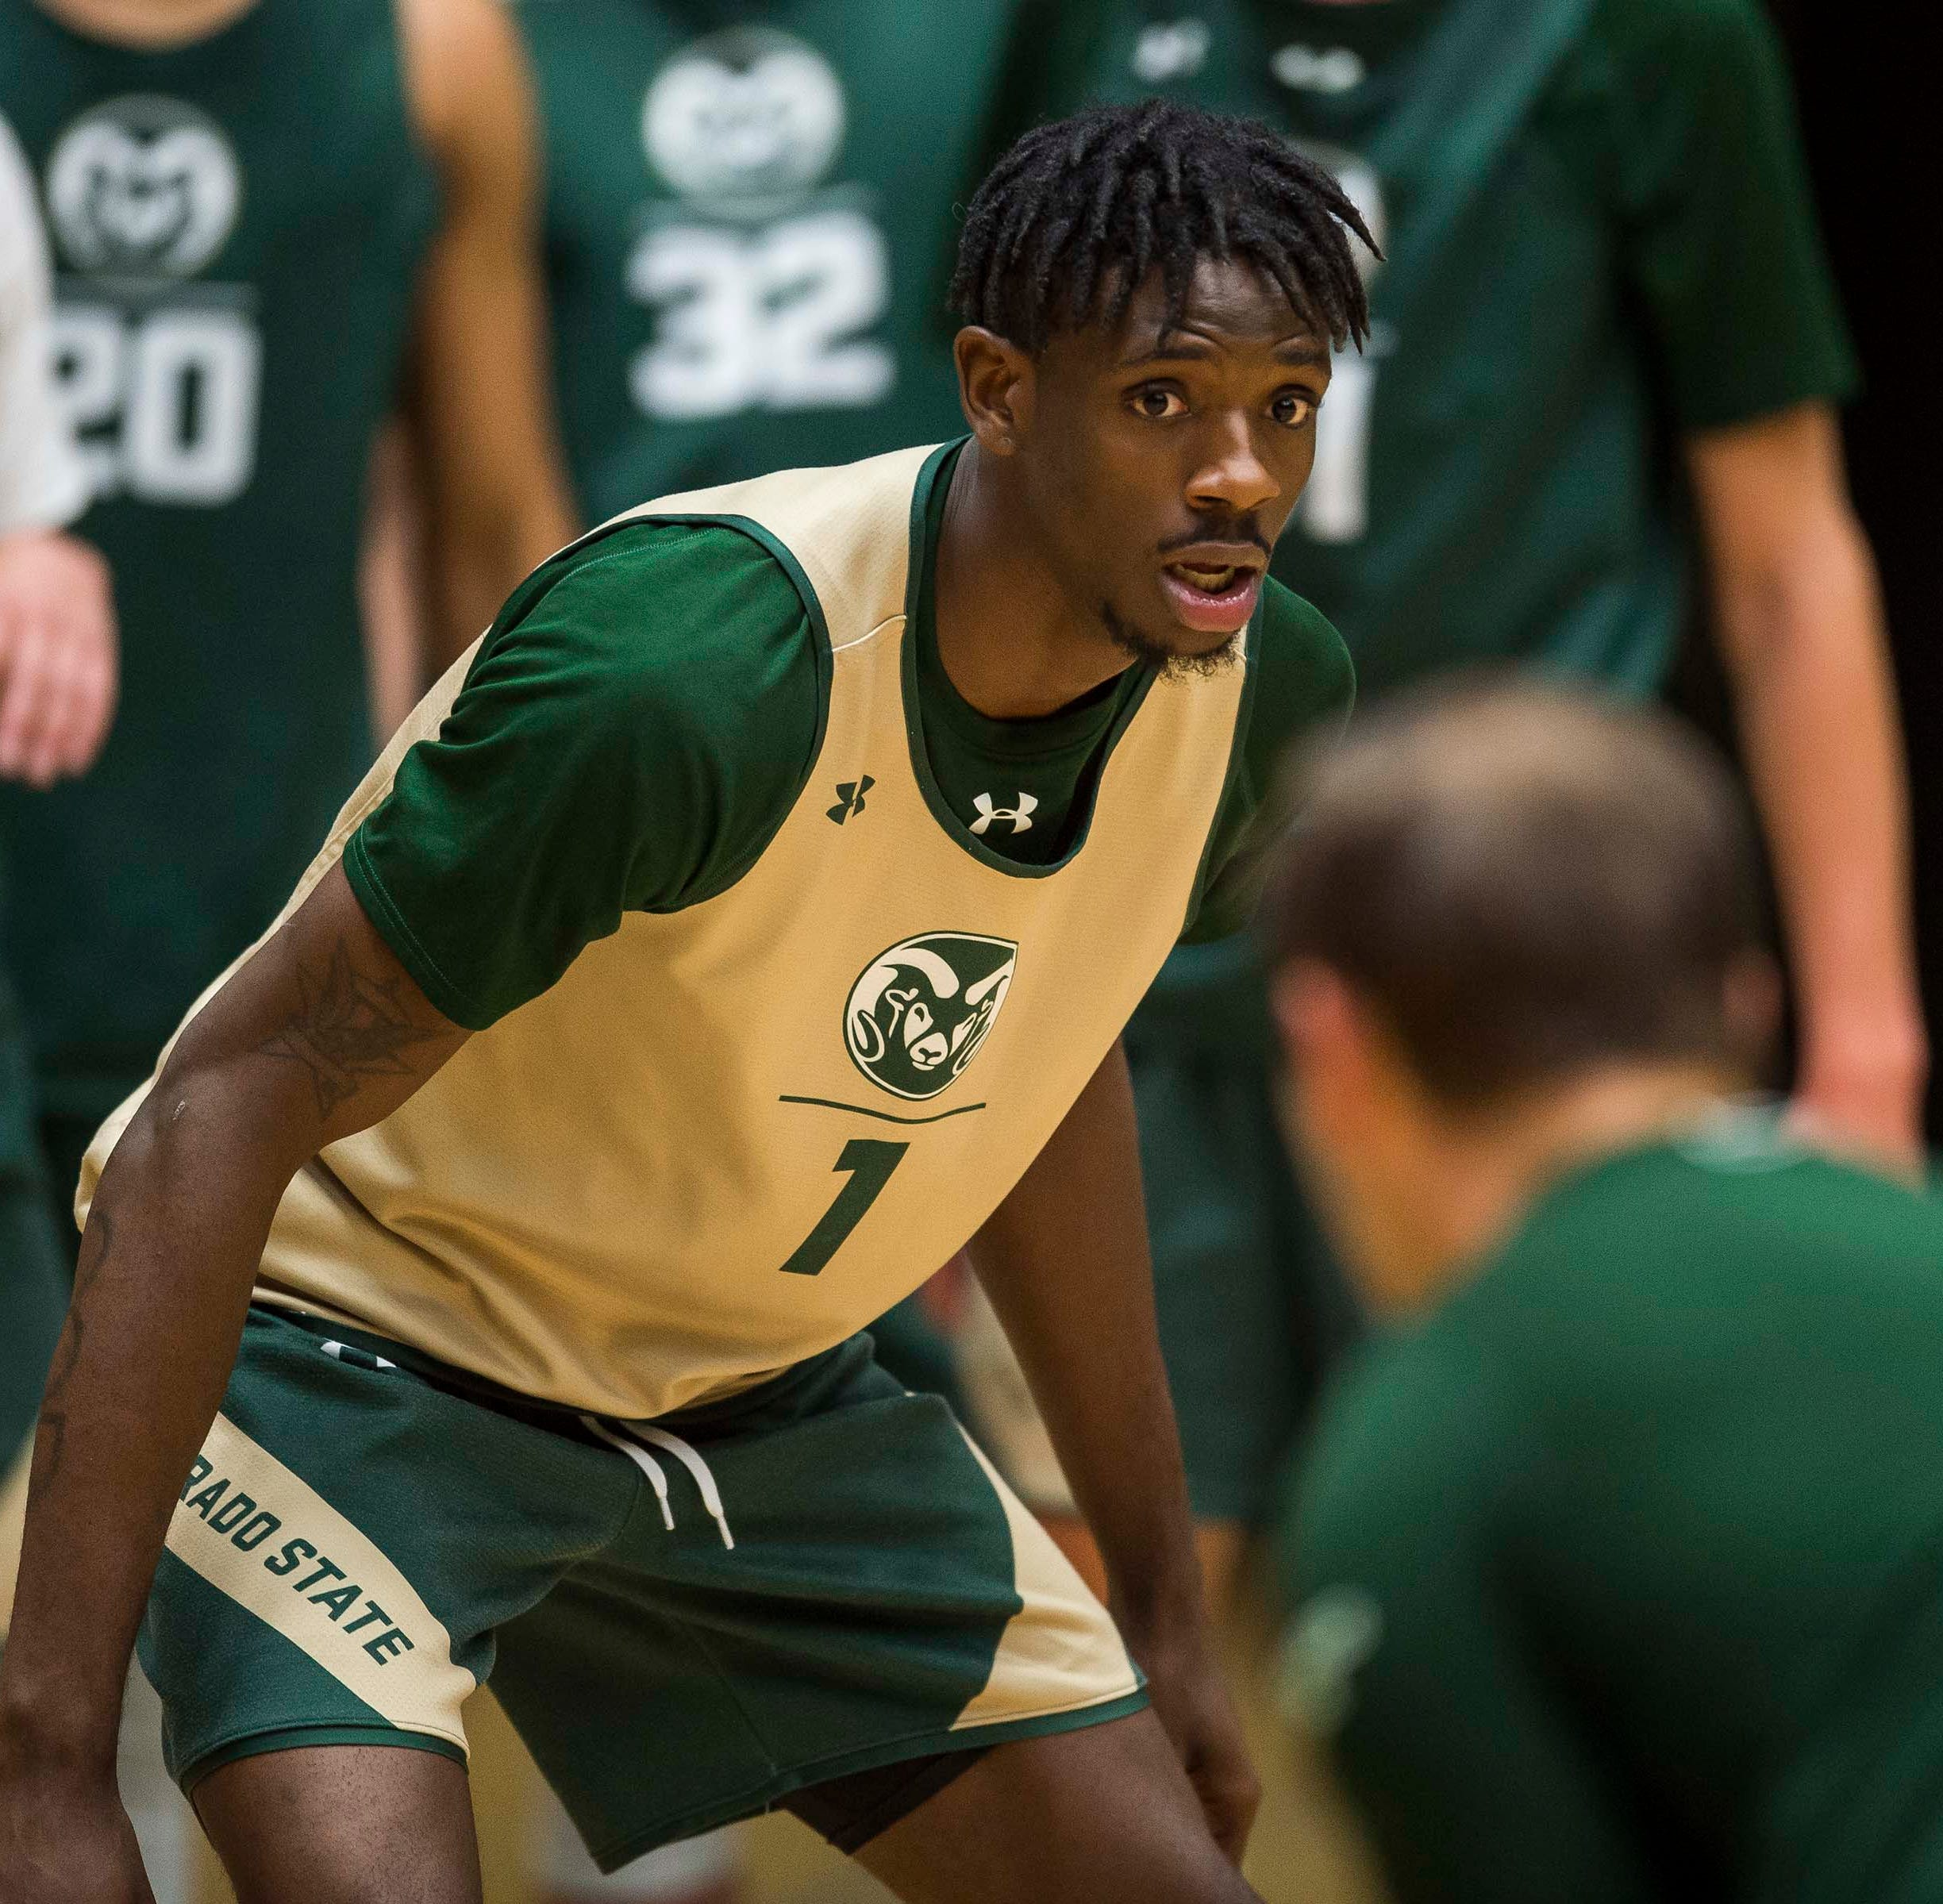 Colorado State basketball forward Zo Tyson plans to transfer